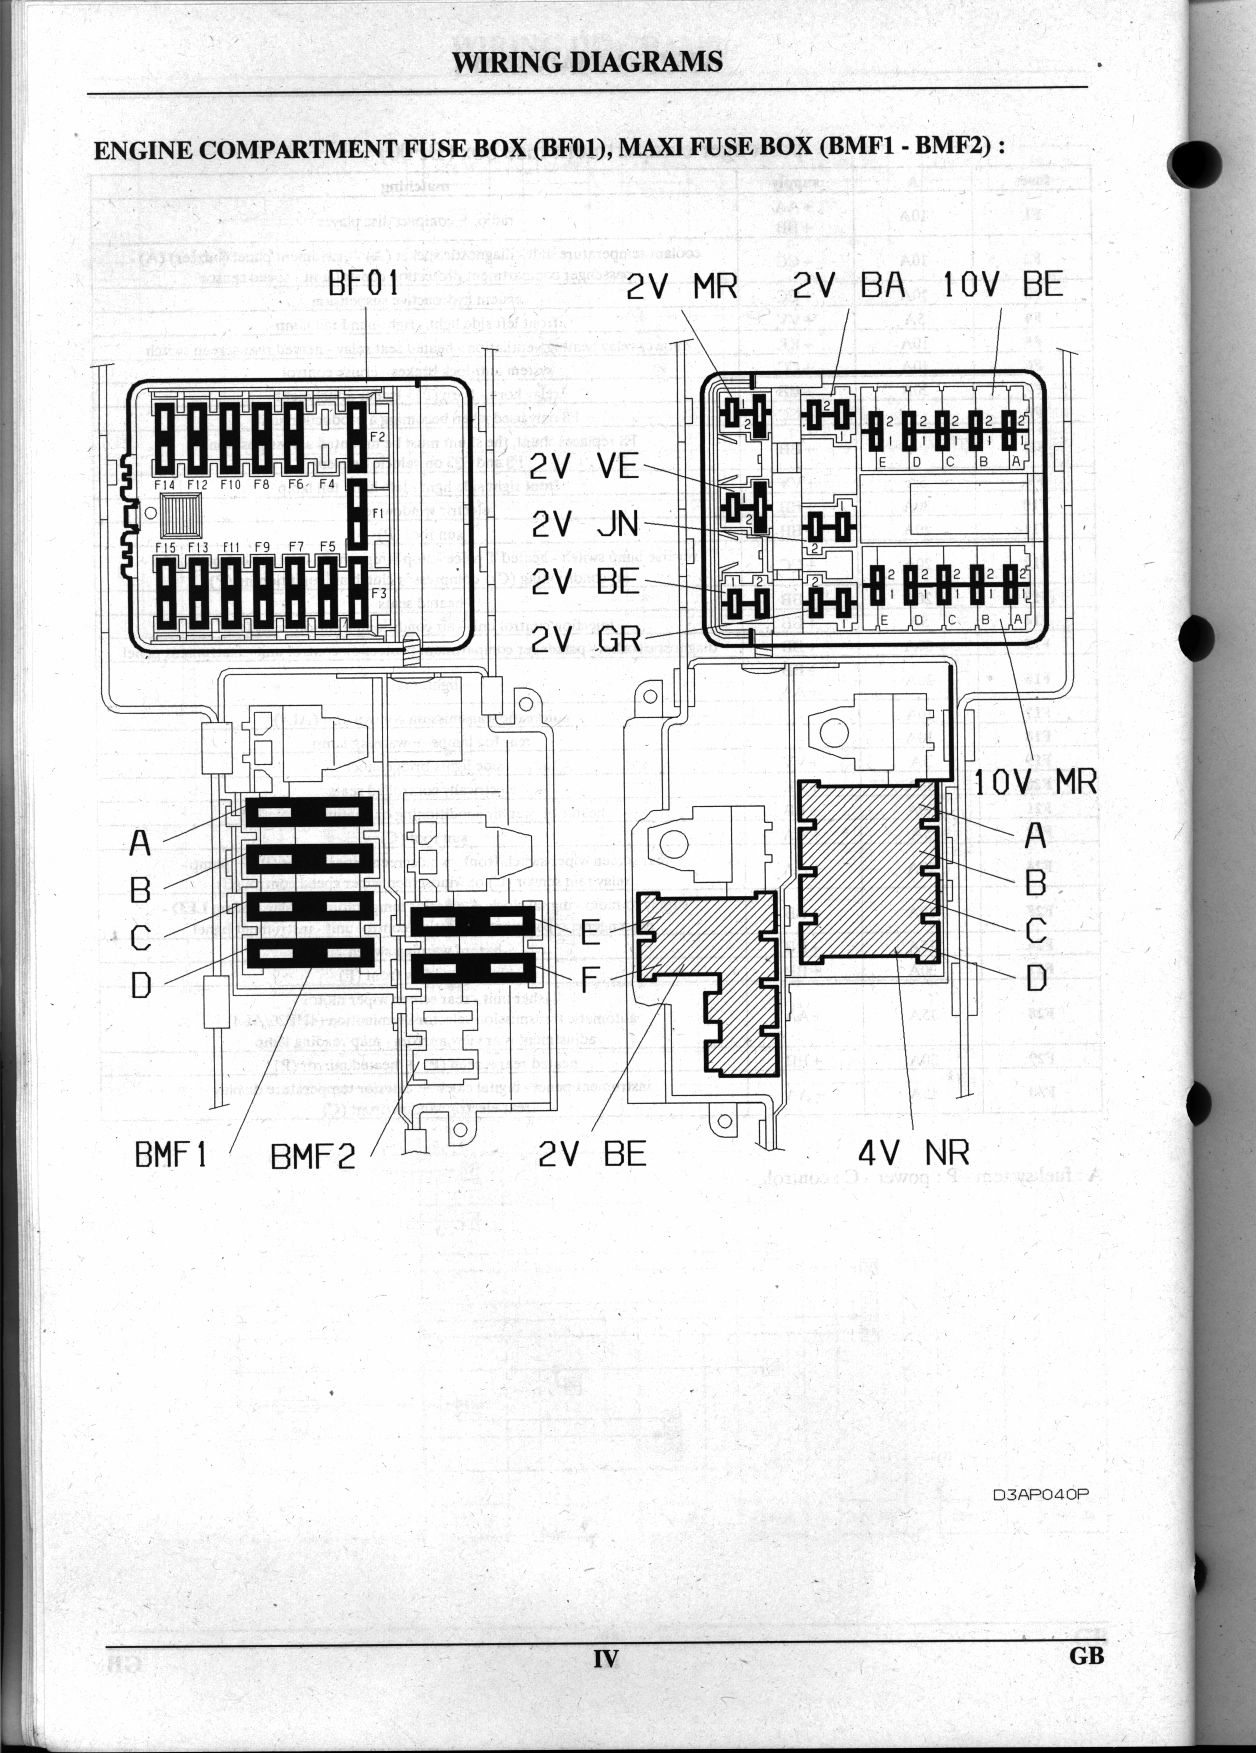 mk2ebfb_1 citroen saxo fuse box diagram 2004 ford explorer fuse box diagram citroen saxo fuse box diagram at reclaimingppi.co